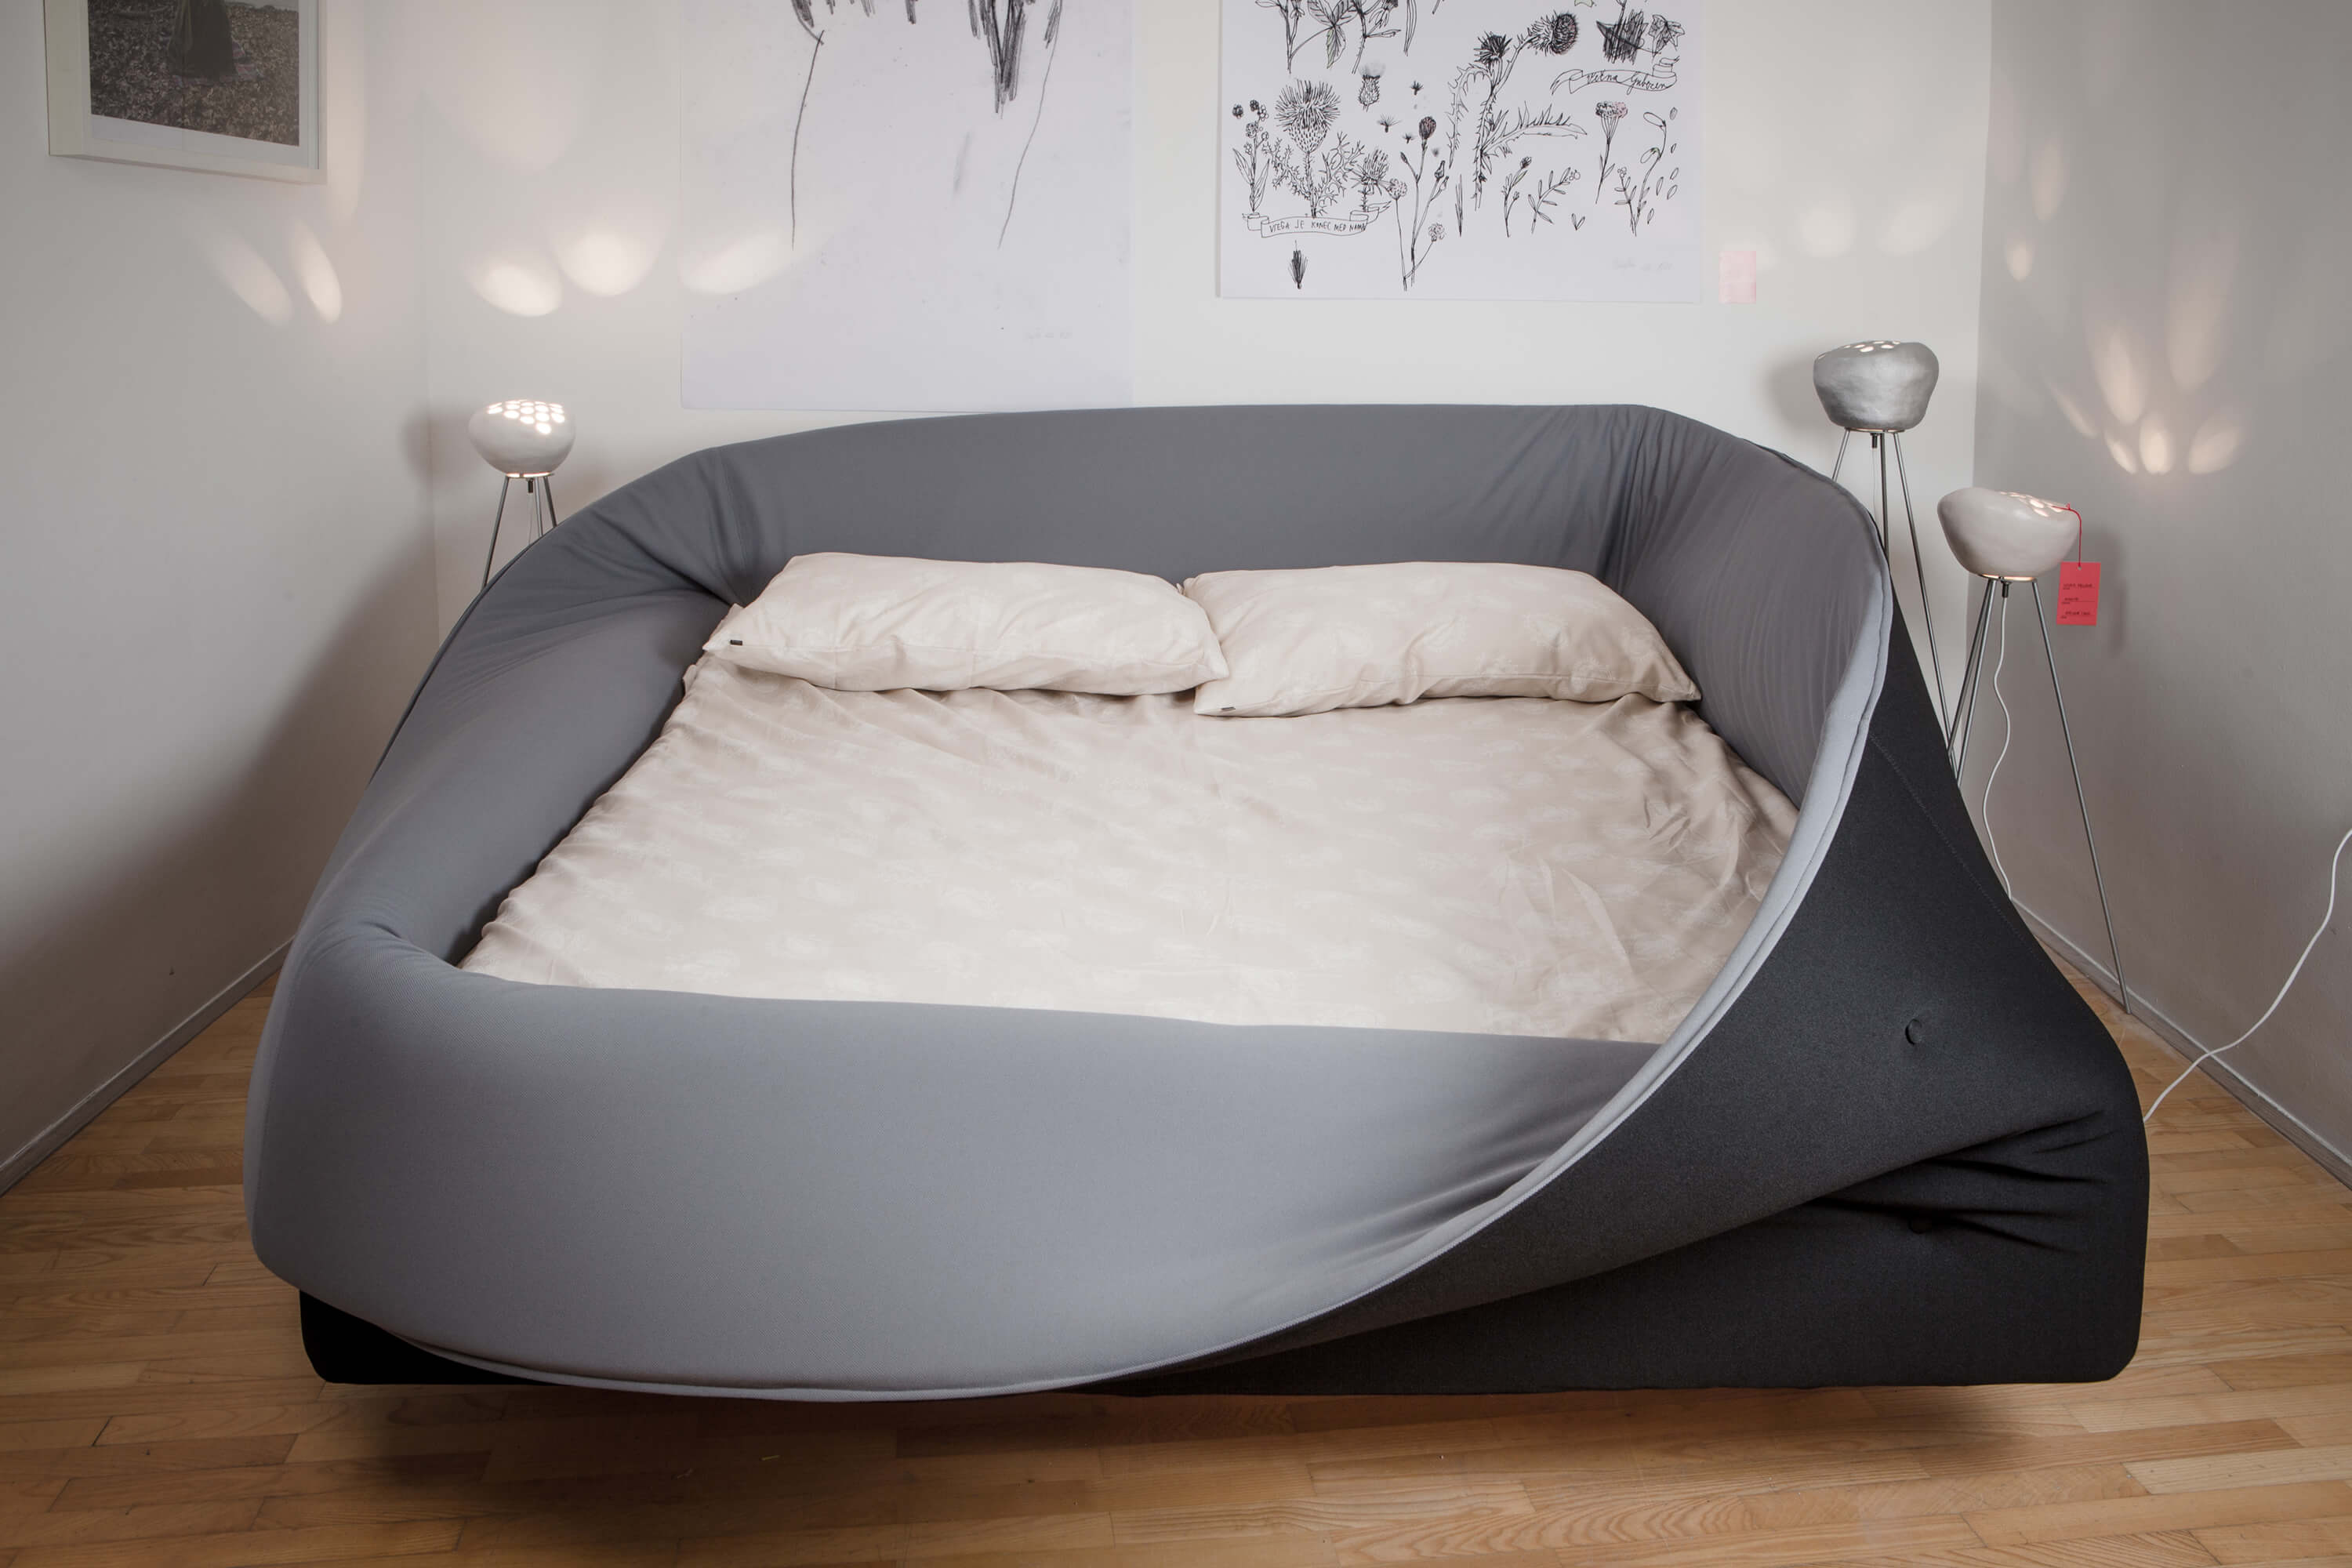 A bed in pop-up store Pop-Up Dom.